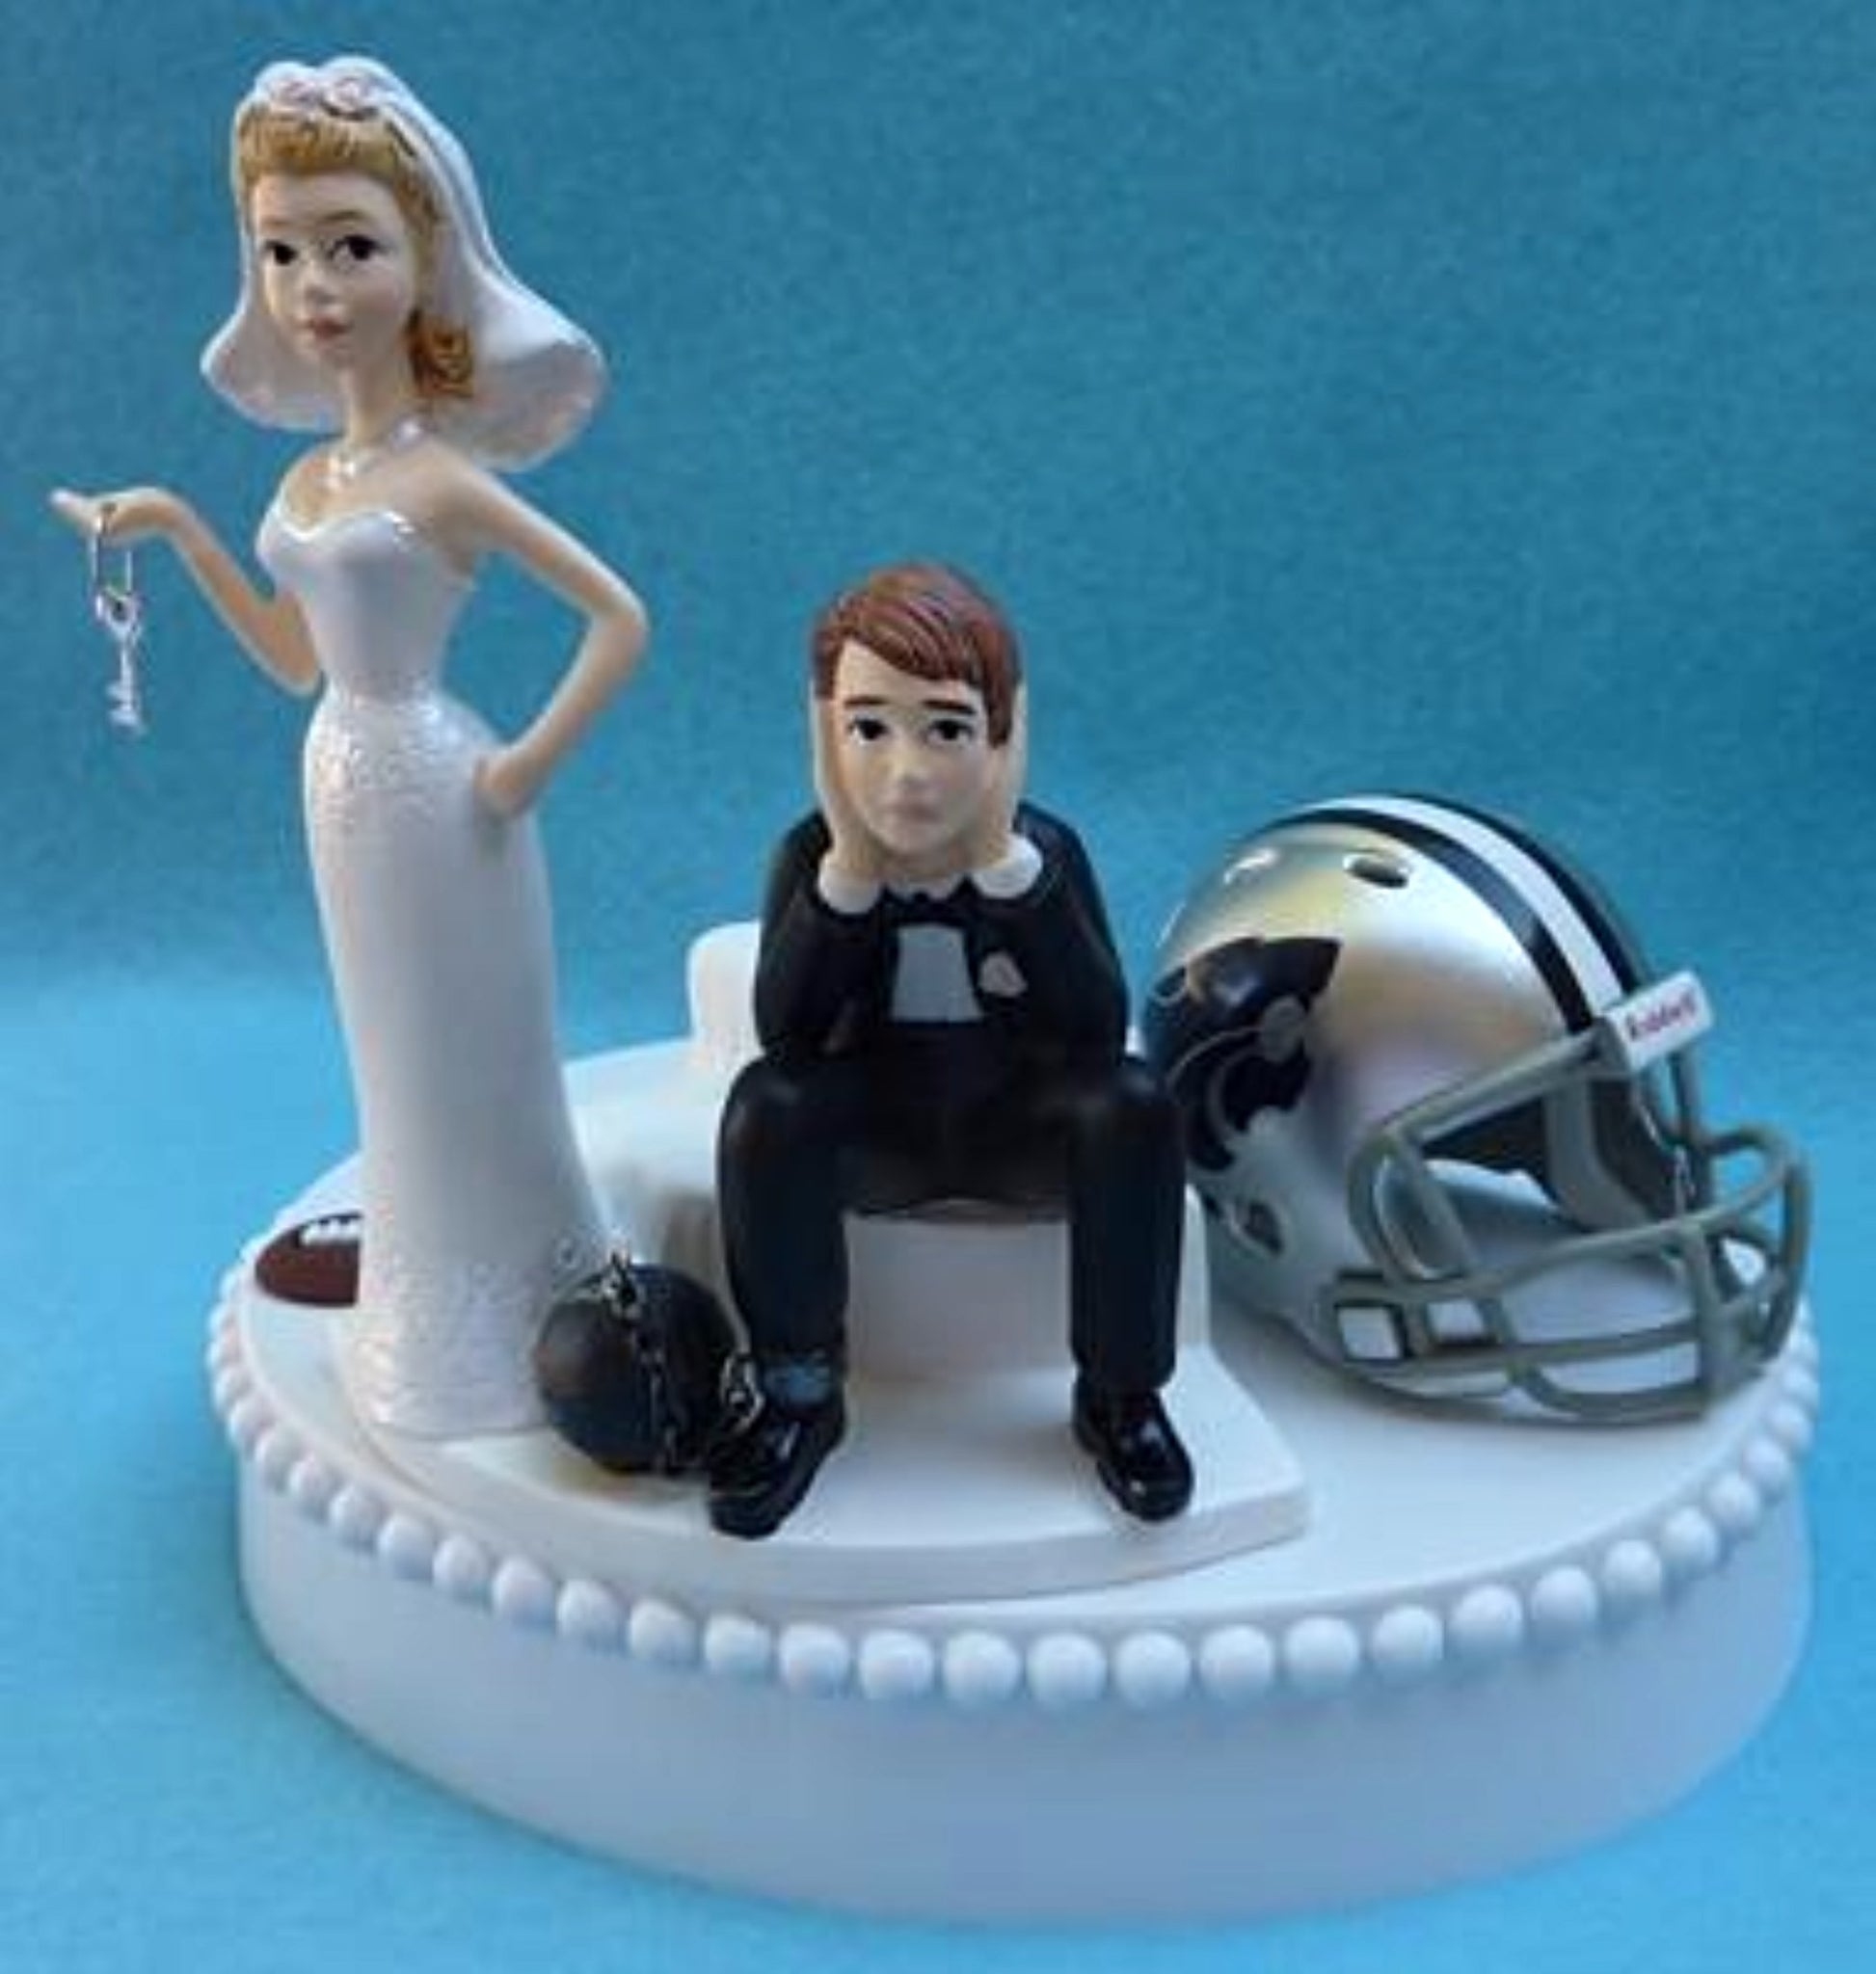 Kansas St. Wildcats wedding cake topper KSU University humorous ball chain bride sad groom key sports fans funny Fun Wedding Things